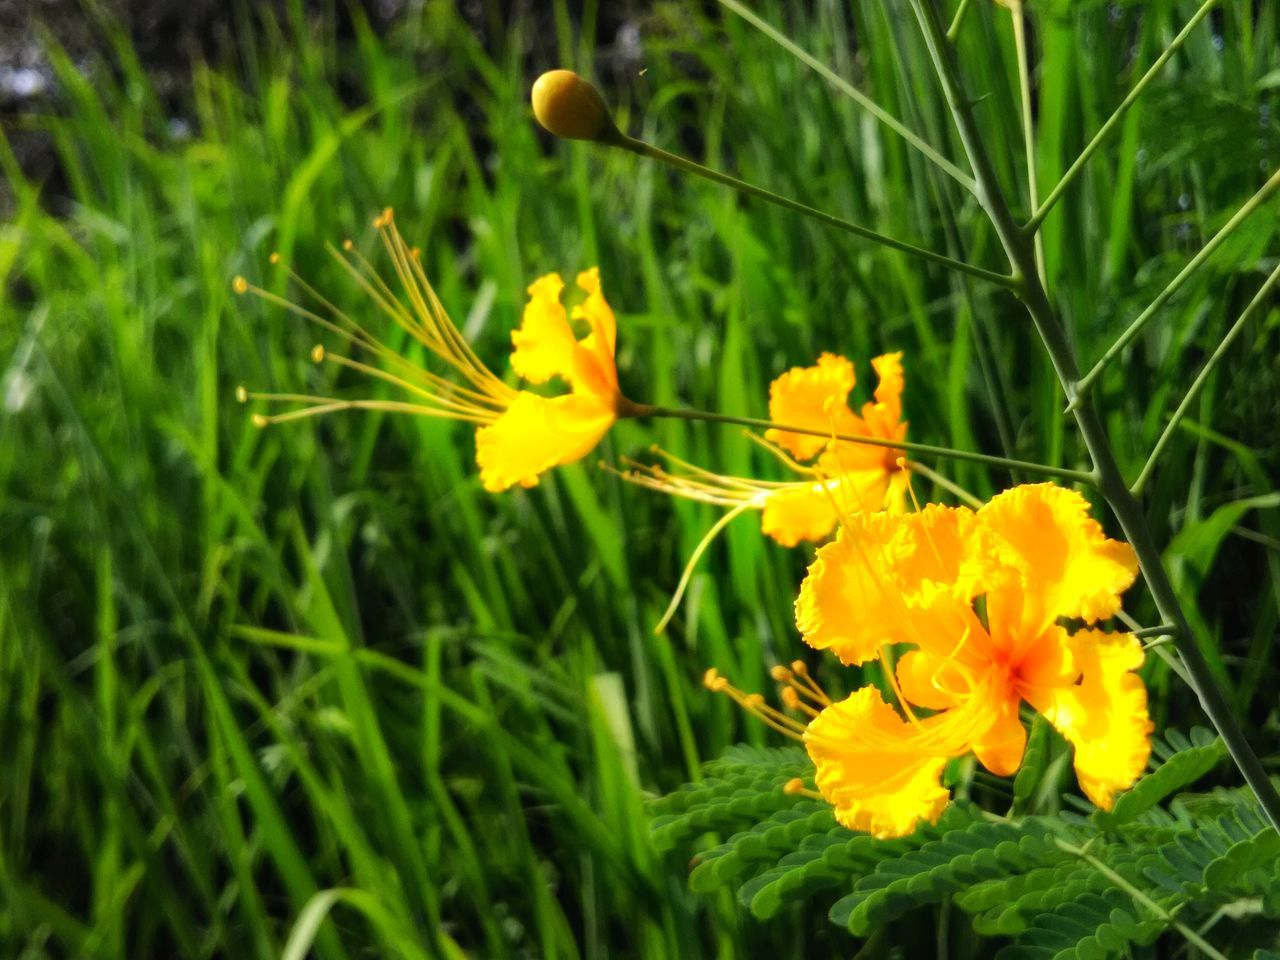 flower, yellow, growth, petal, fragility, freshness, nature, beauty in nature, flower head, plant, no people, outdoors, close-up, green color, blooming, day